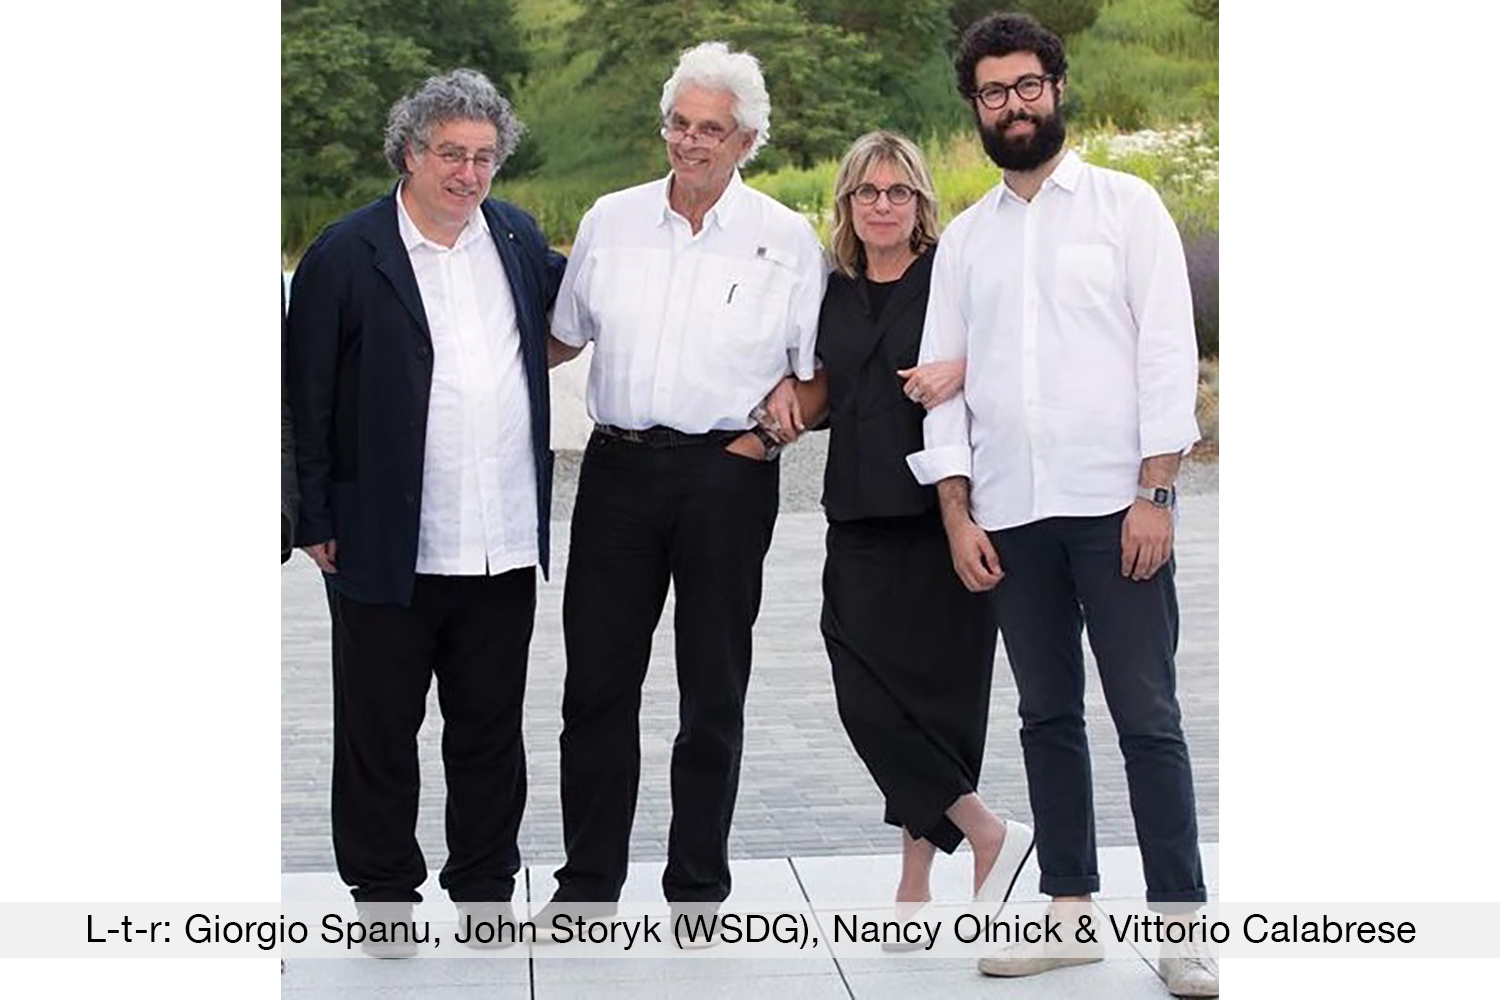 Magazzino Italian Art Giorgio Spanu, Nancy Olnick and Vittorio Calabrese with legendary acoustician John Storyk, WSDG Founder.